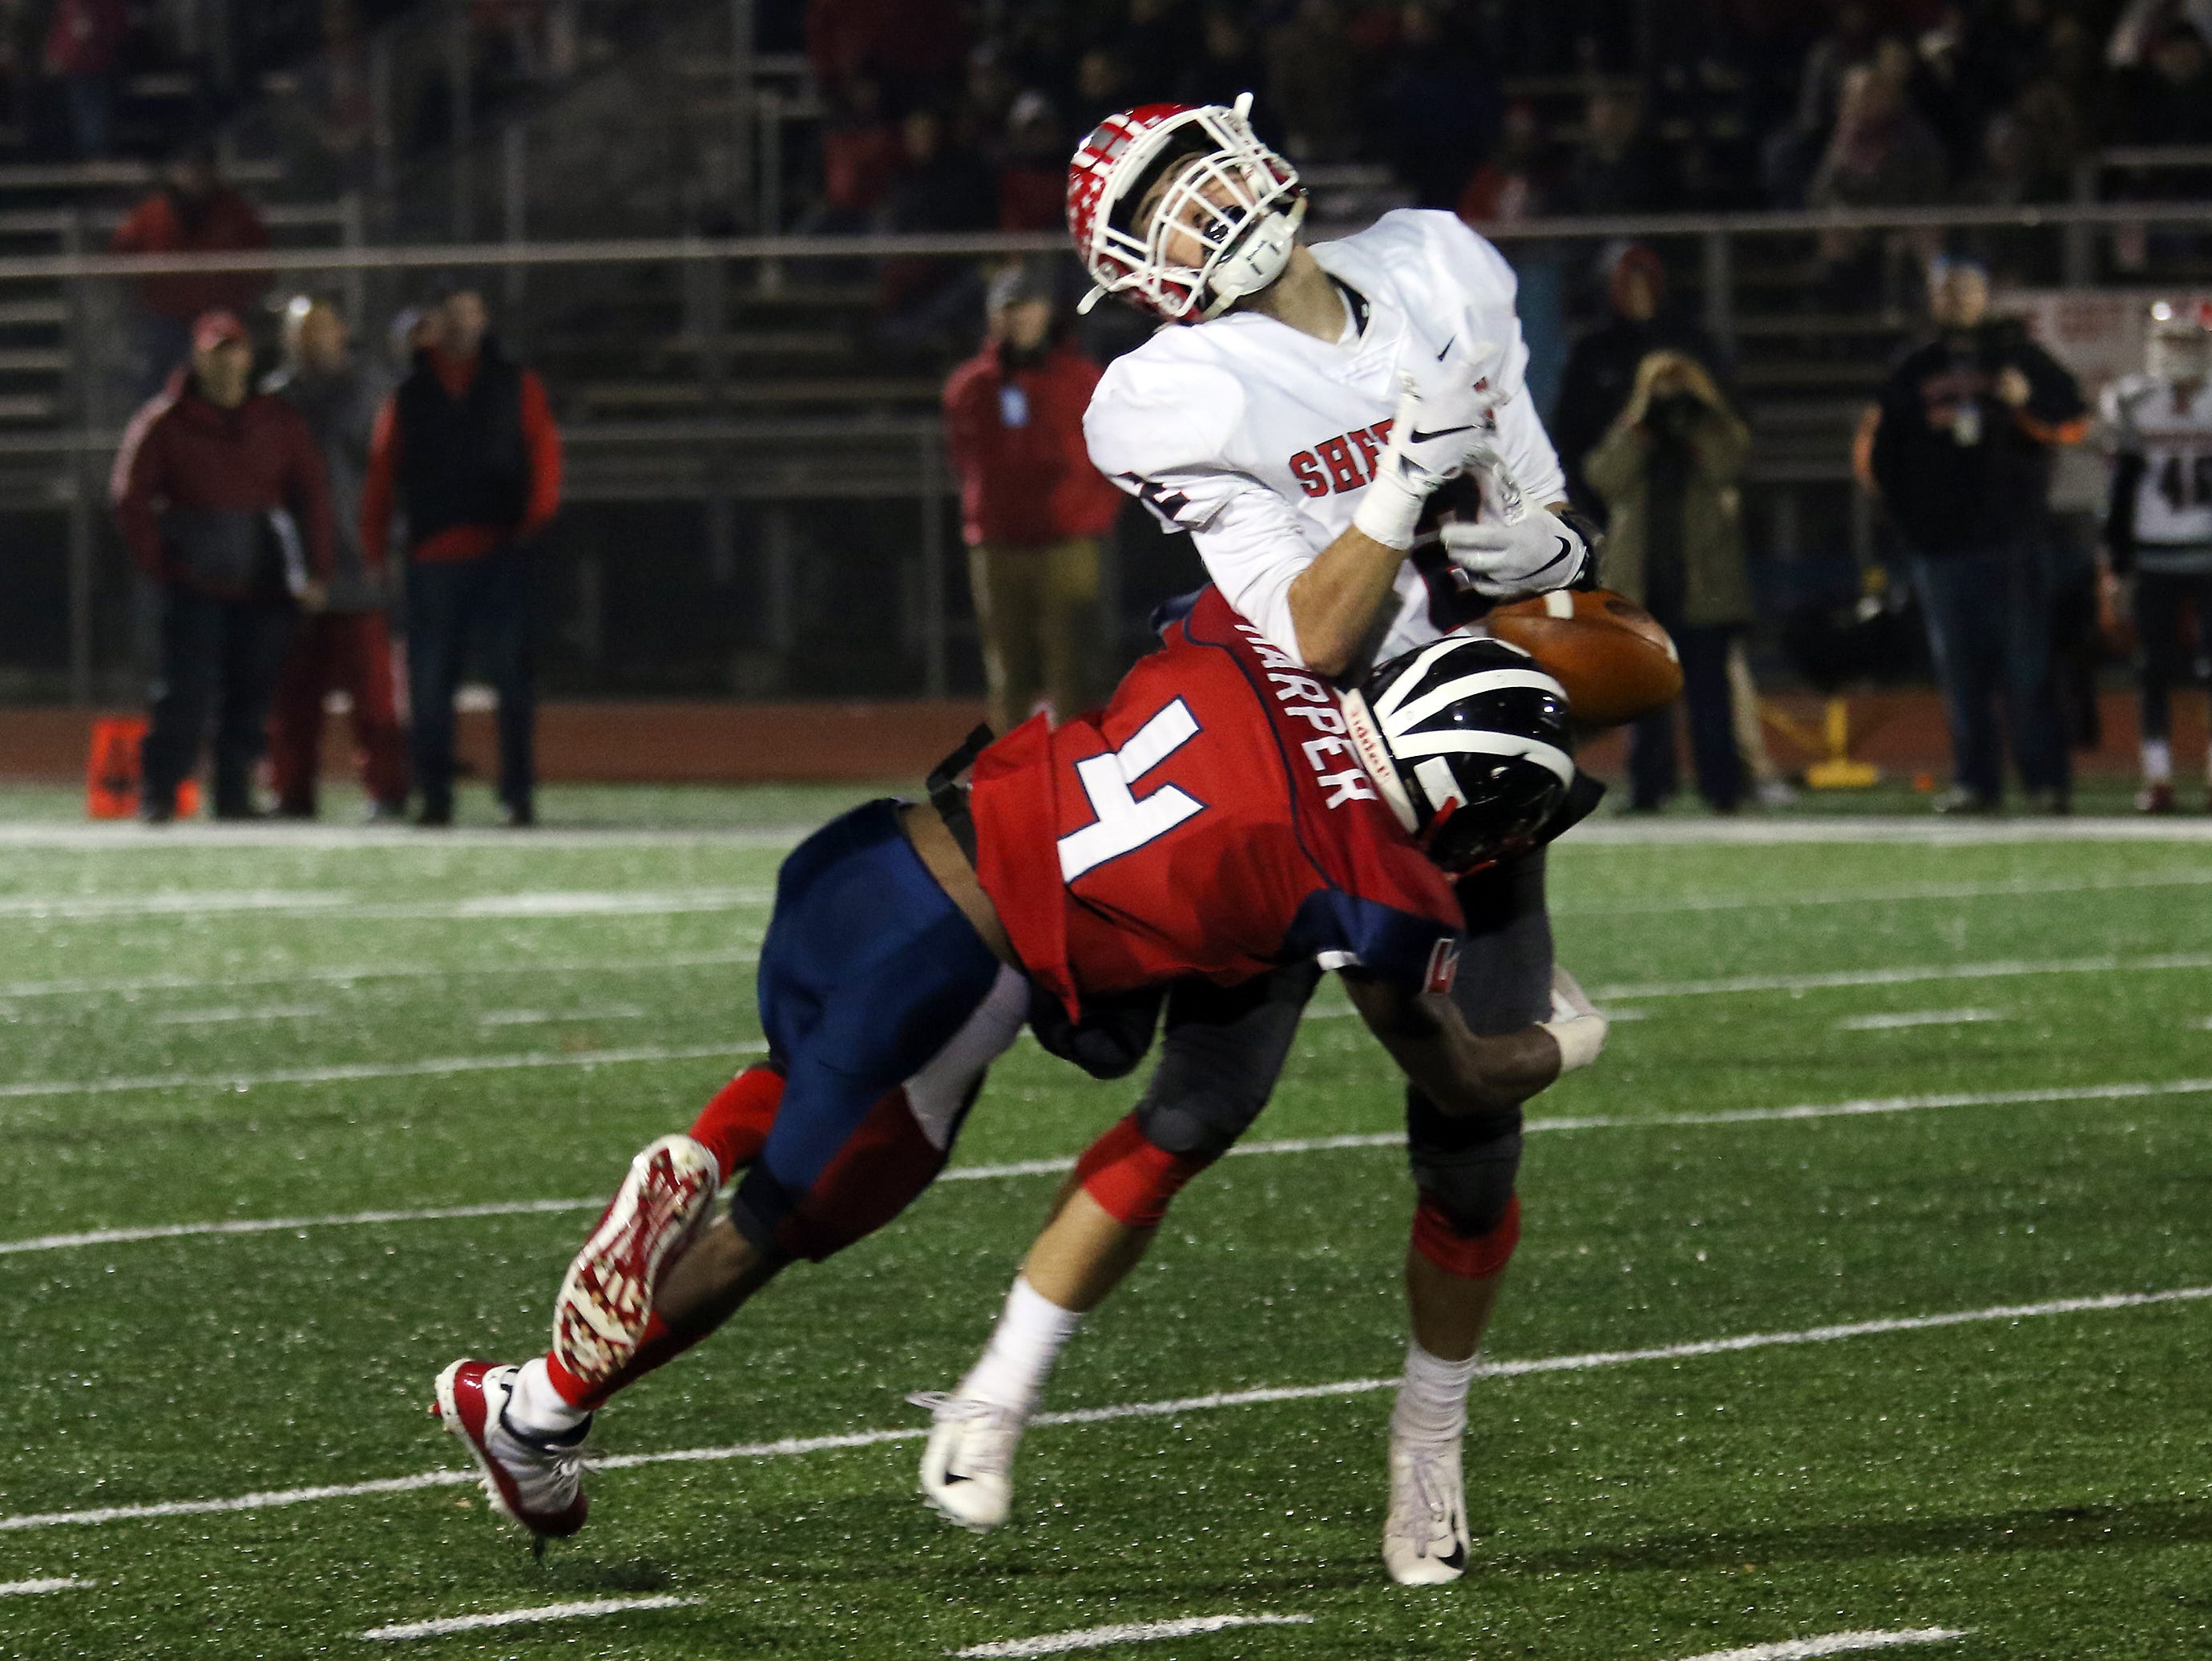 Sheridan's Cole Casto gets hit by an Eastmoor defender.